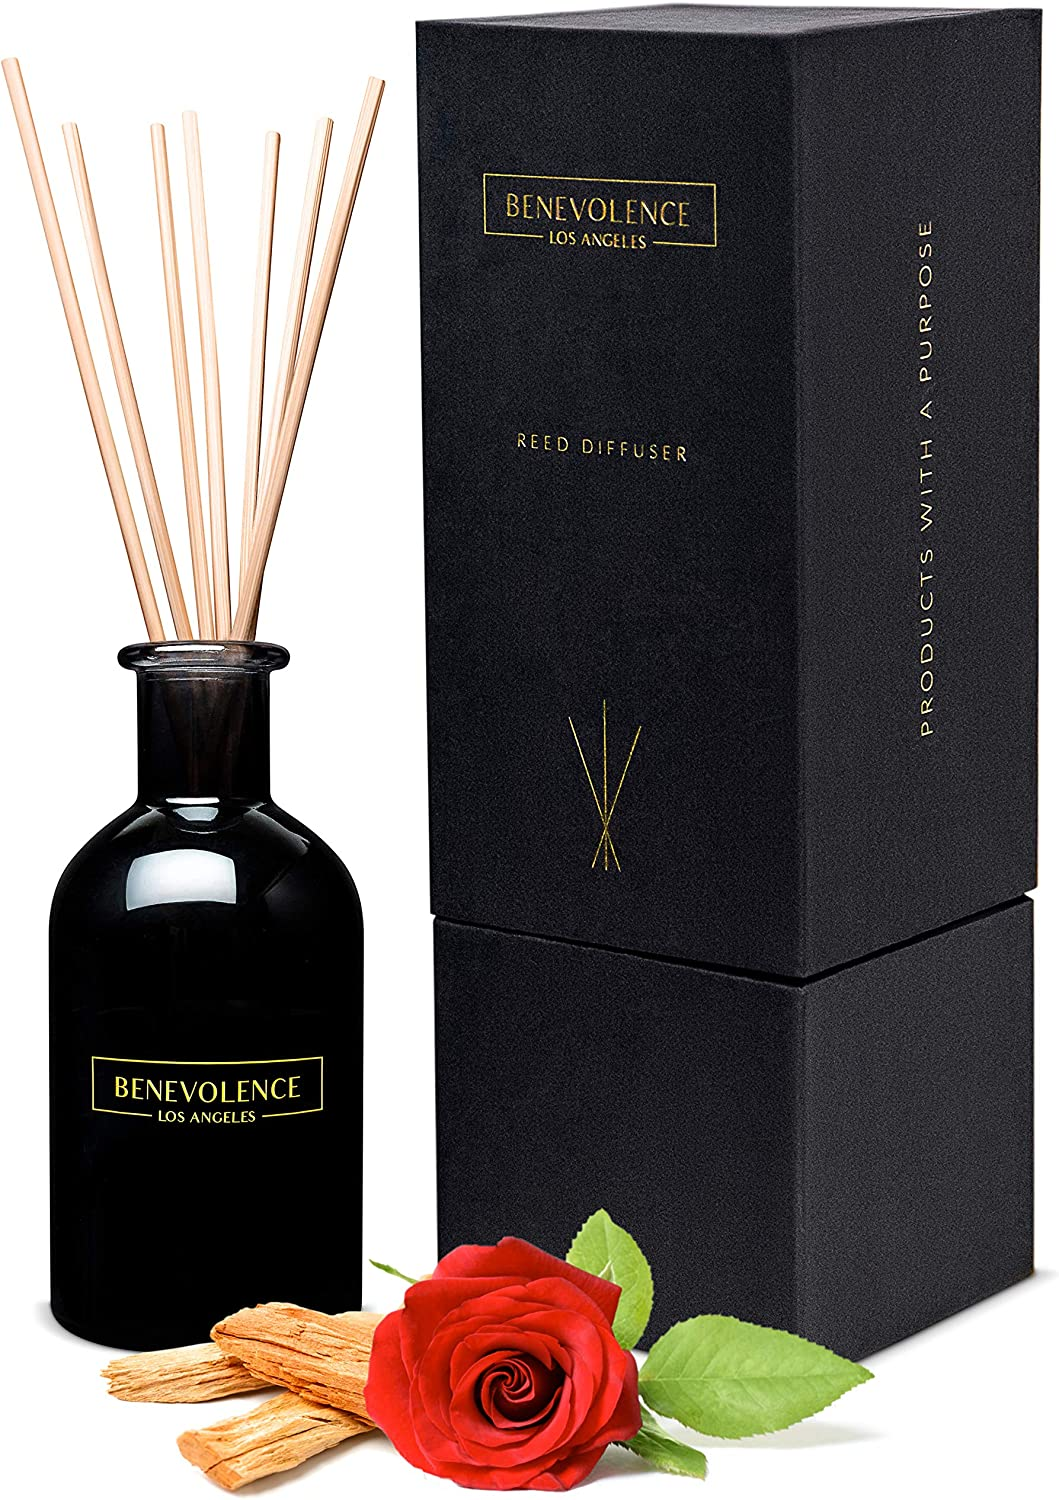 Benevolence LA Reed Diffusers for Home | Rose & Sandalwood Fragrance Diffuser | Aromatherapy Scented Oil Reed Diffuser Set | Sticks Diffuser